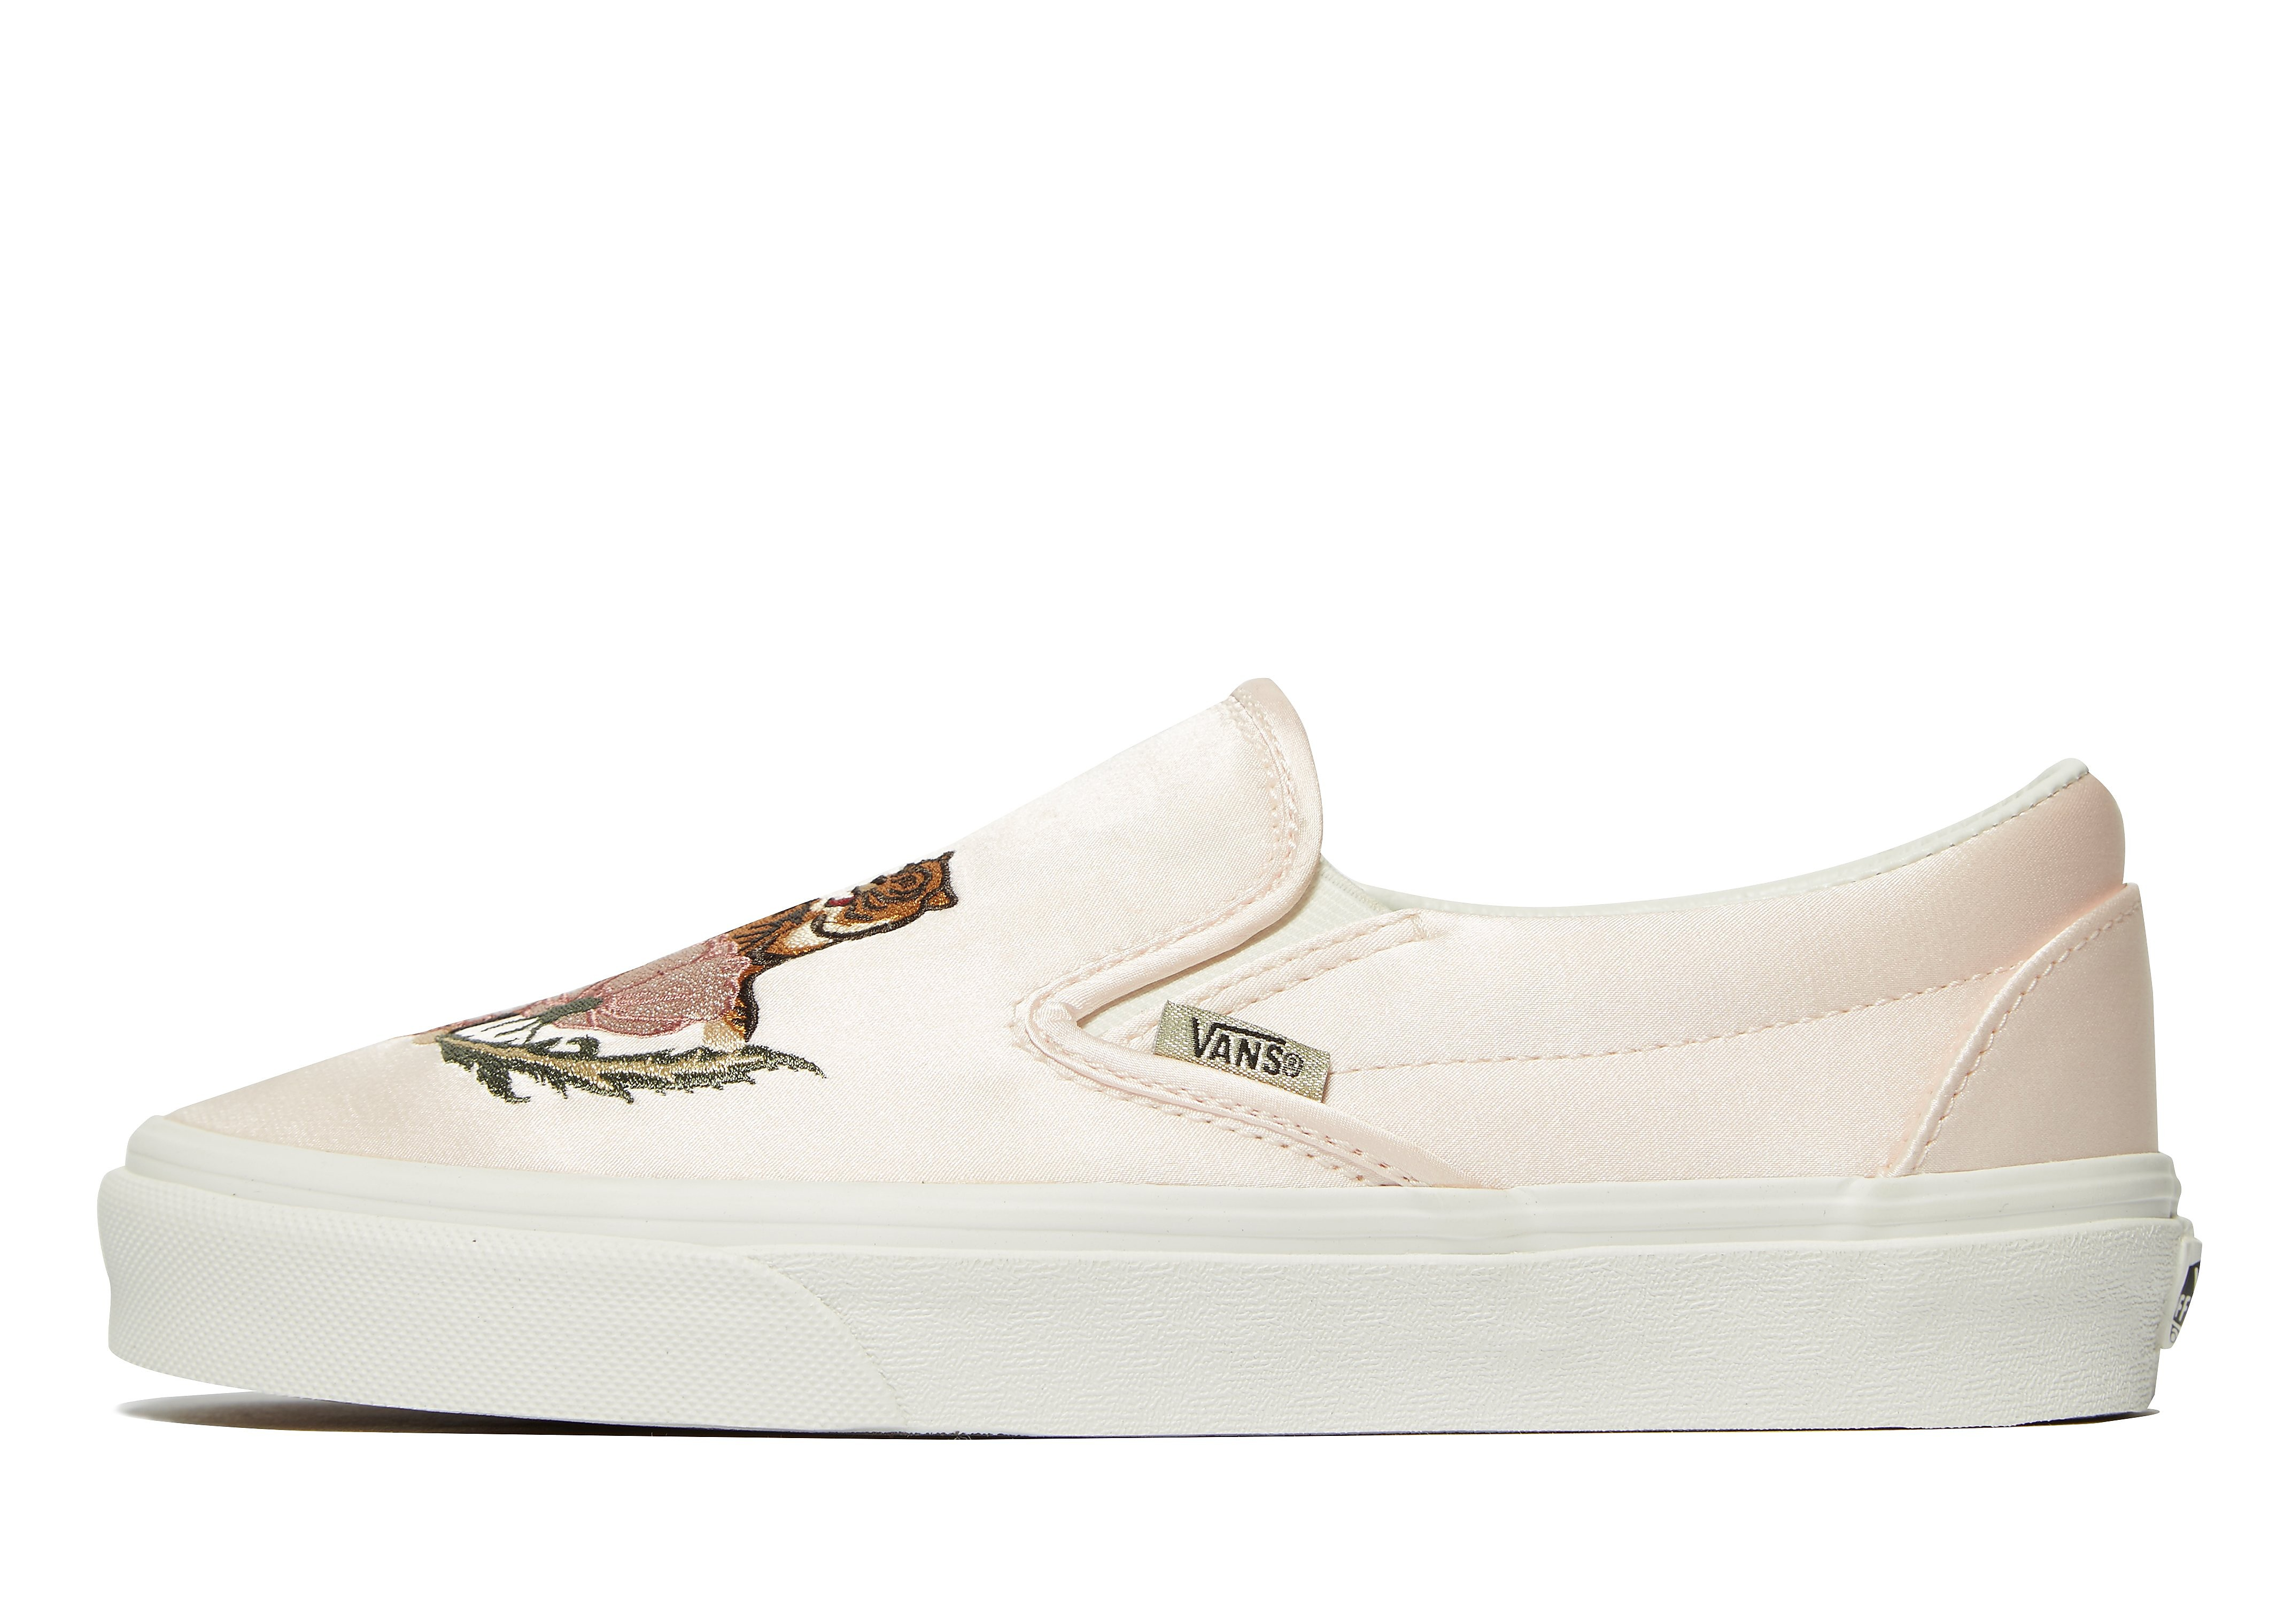 Vans California Souvenir Classic Slip On Women's